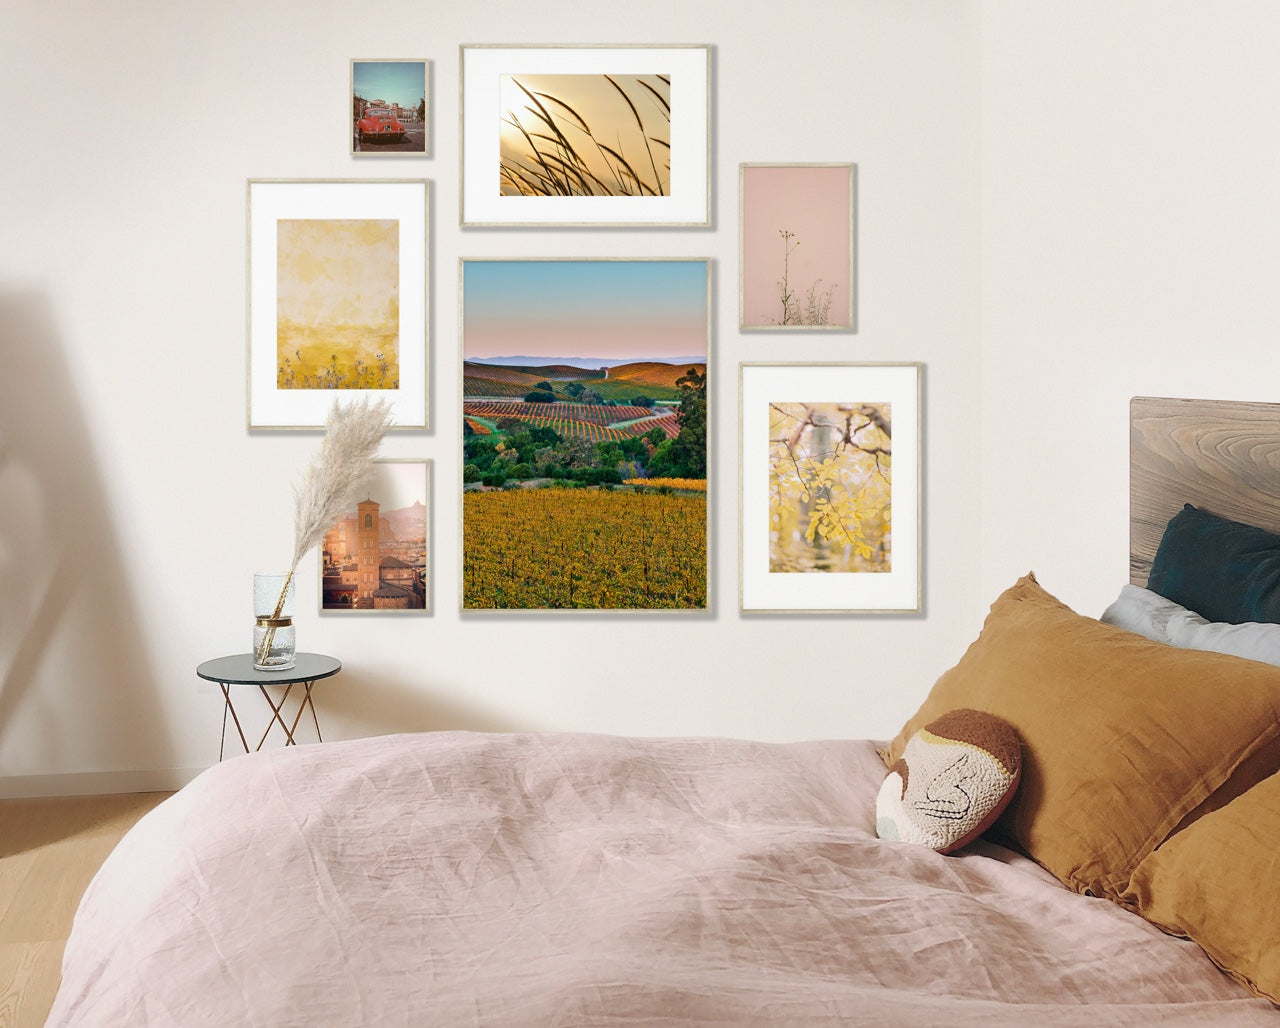 Gallery wall in bedroom